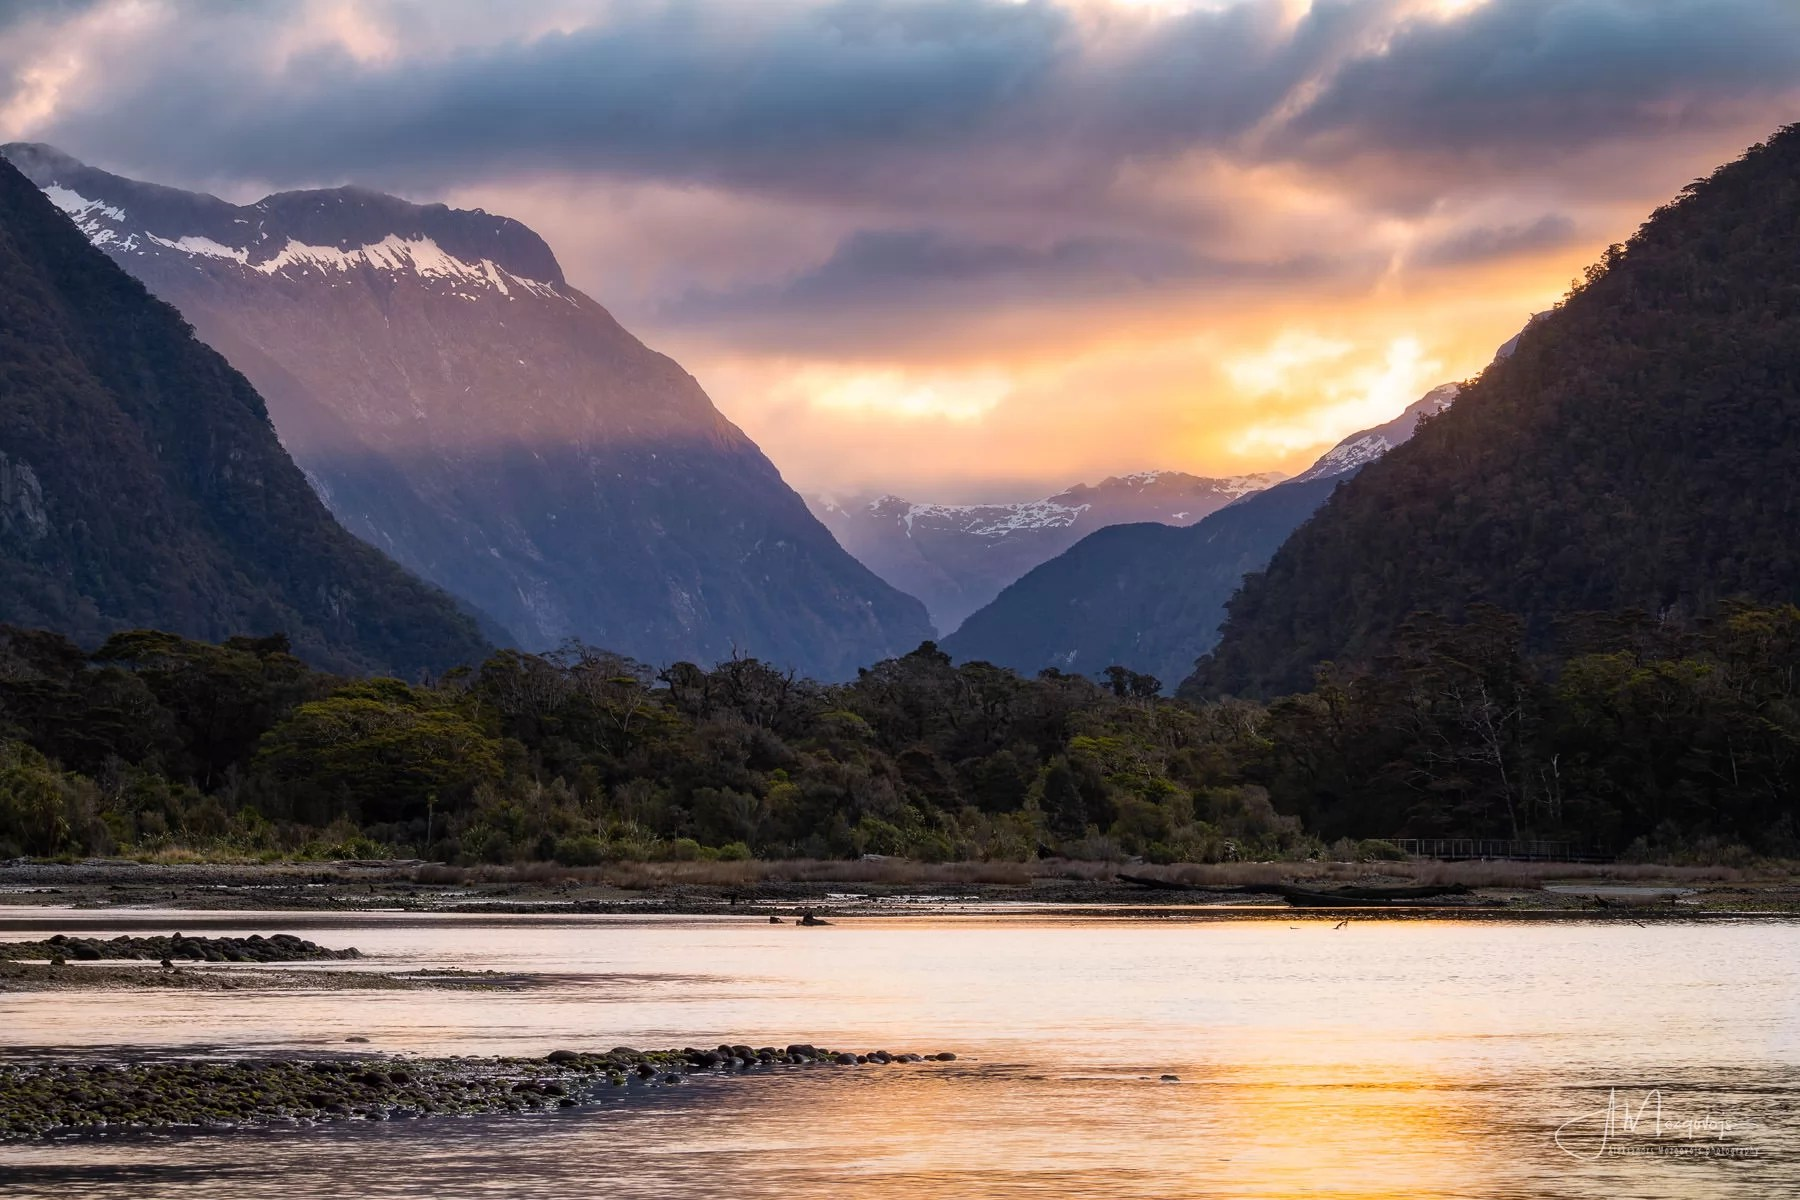 Burning sky in Milford Sound